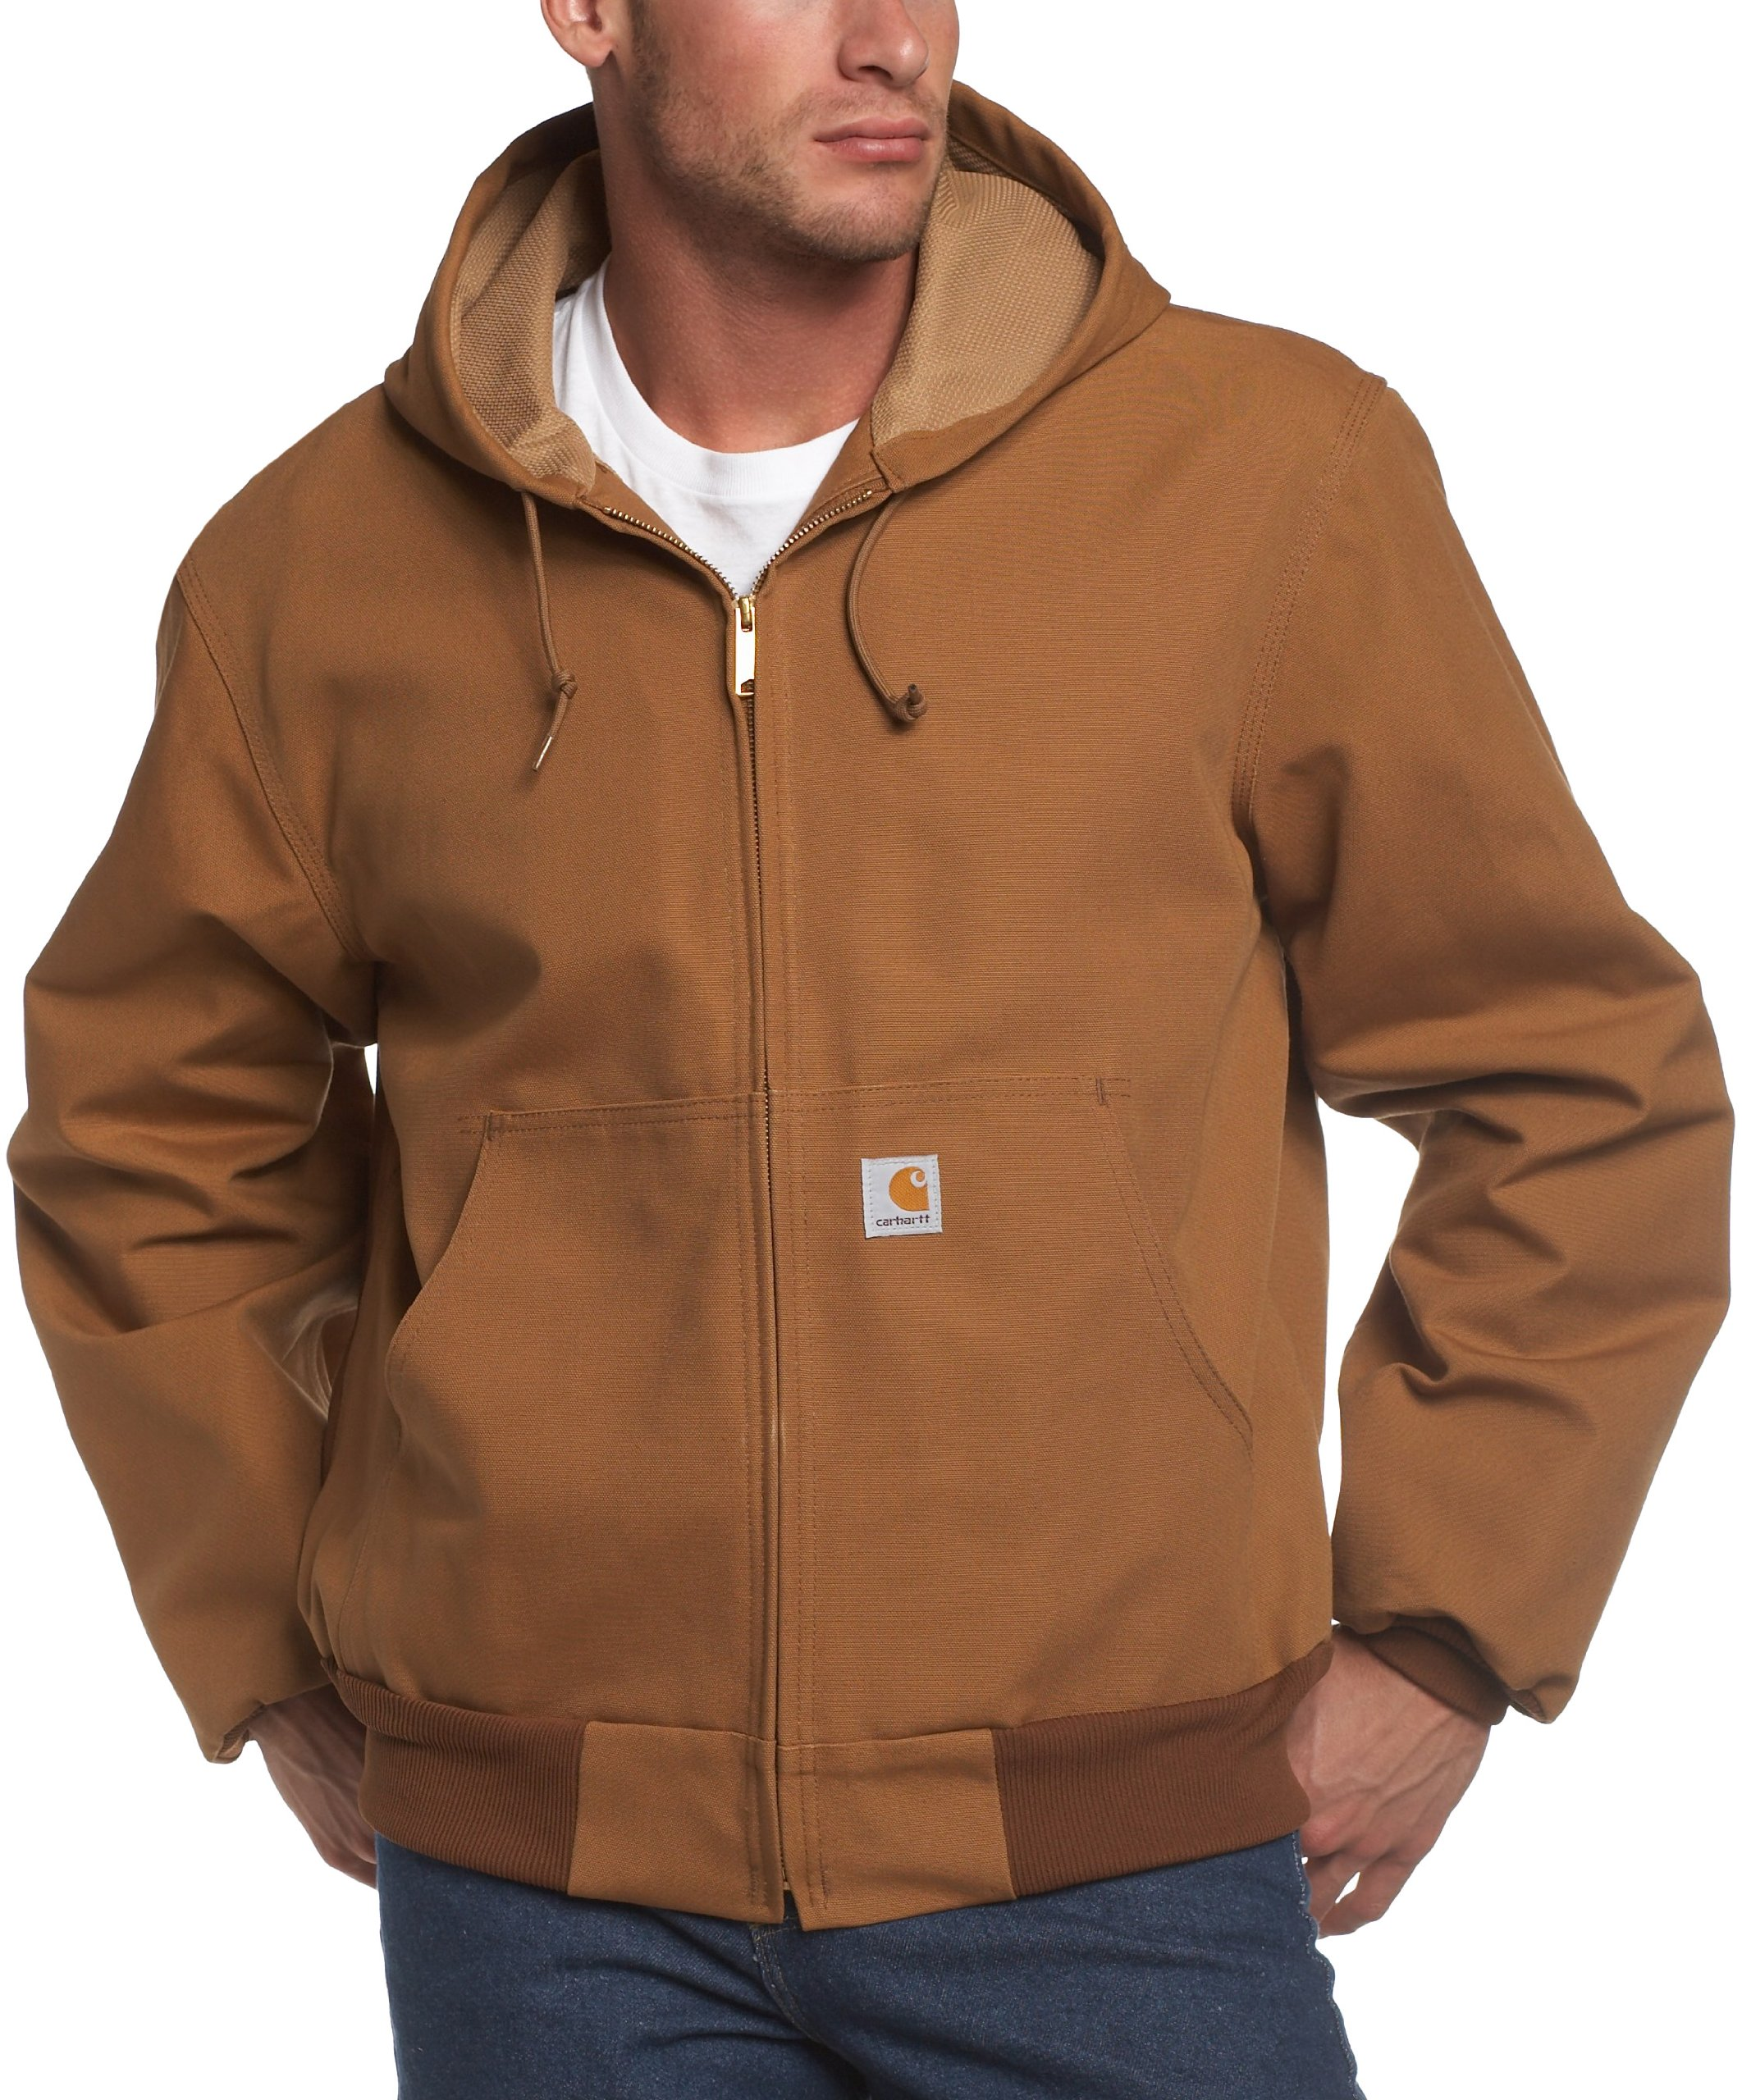 Carhartt Men's Big & Tall Thermal Lined Duck Active Jacket J131,Brown,XXXX-Large Tall